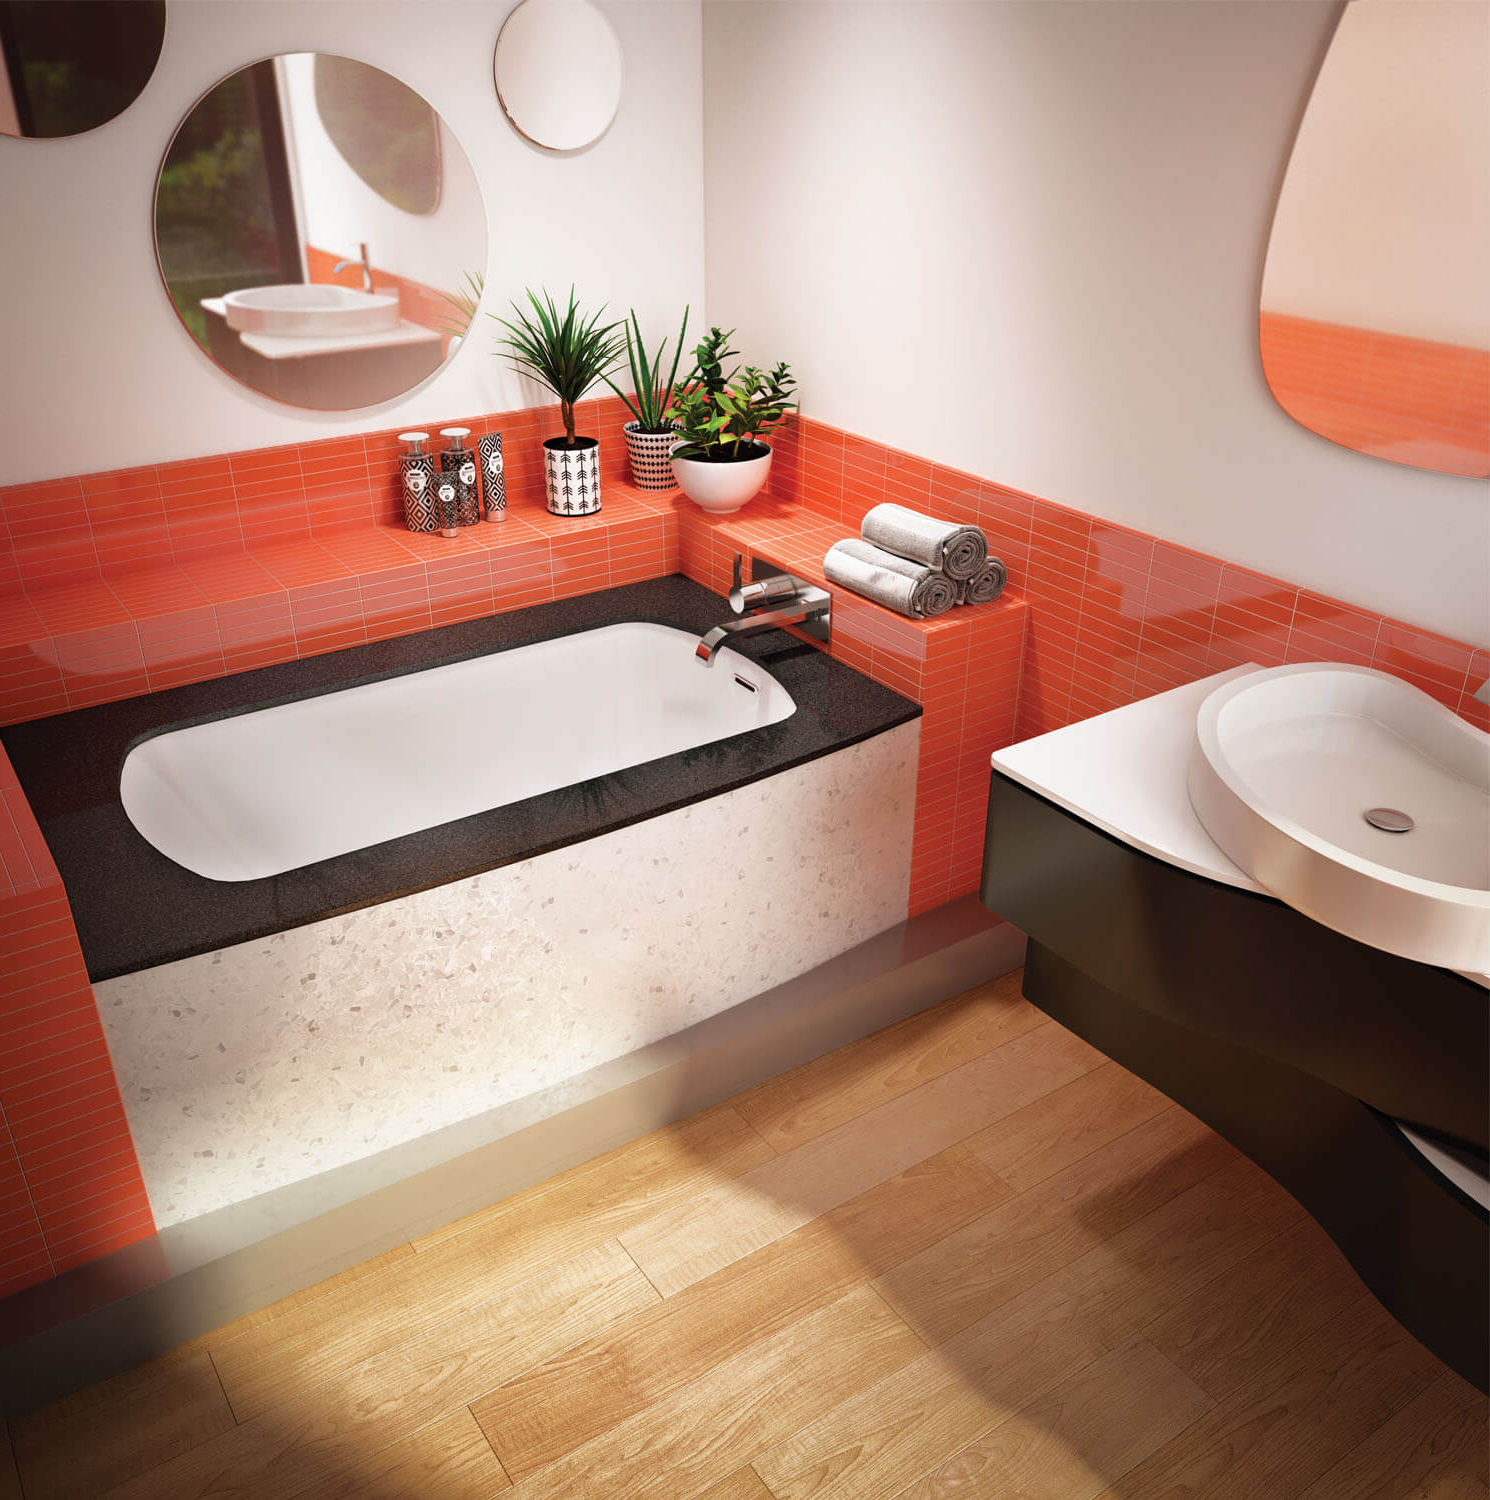 Monarch 6037R air jet bathtub for your modern bathroom